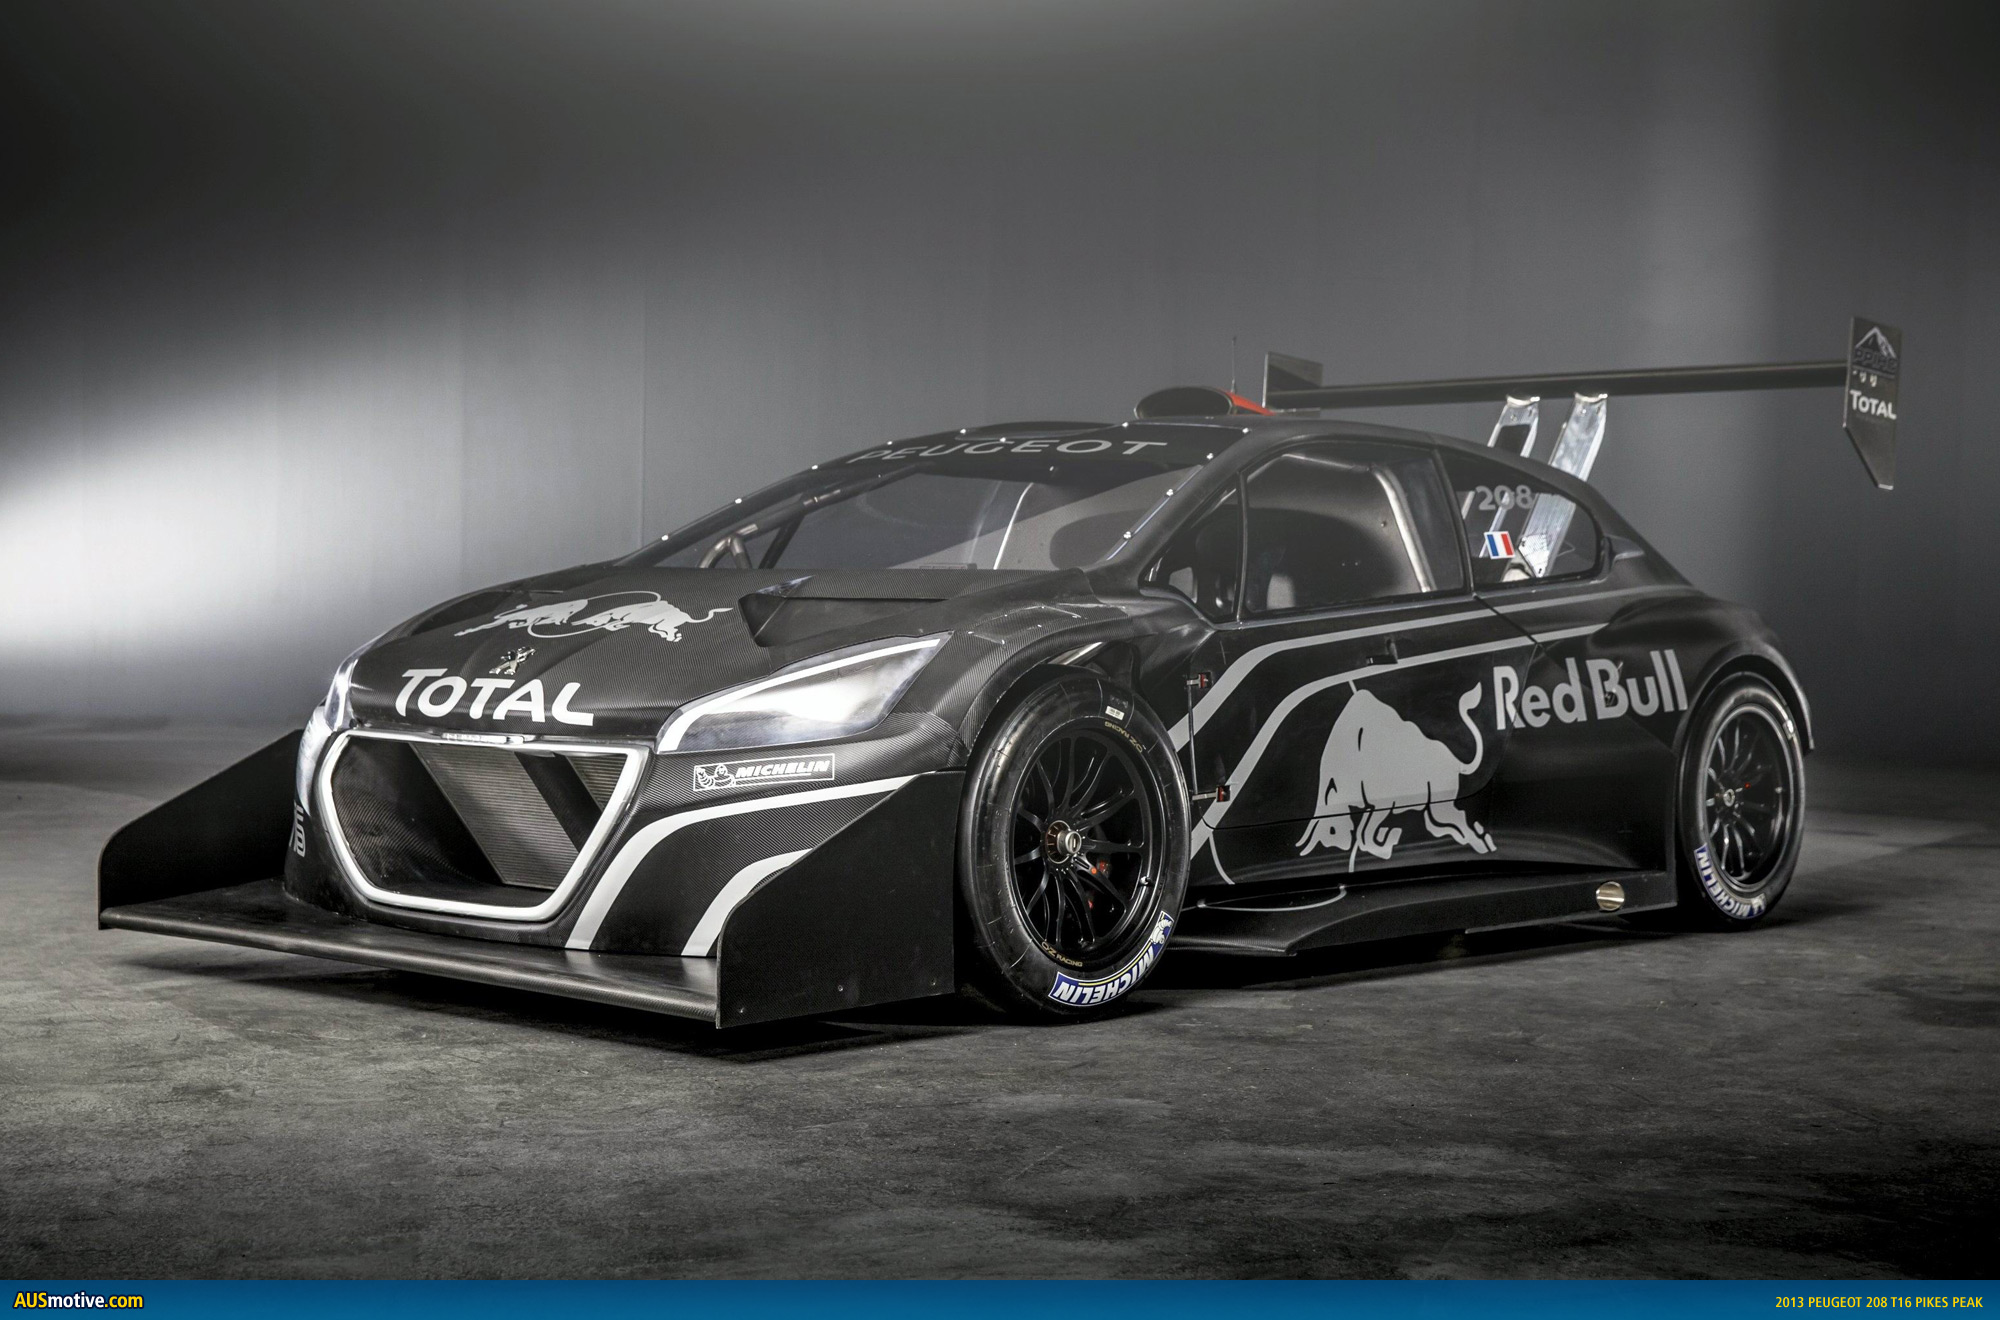 AUSmotive.com » Peugeot 208 T16 Pikes Peak Revealed